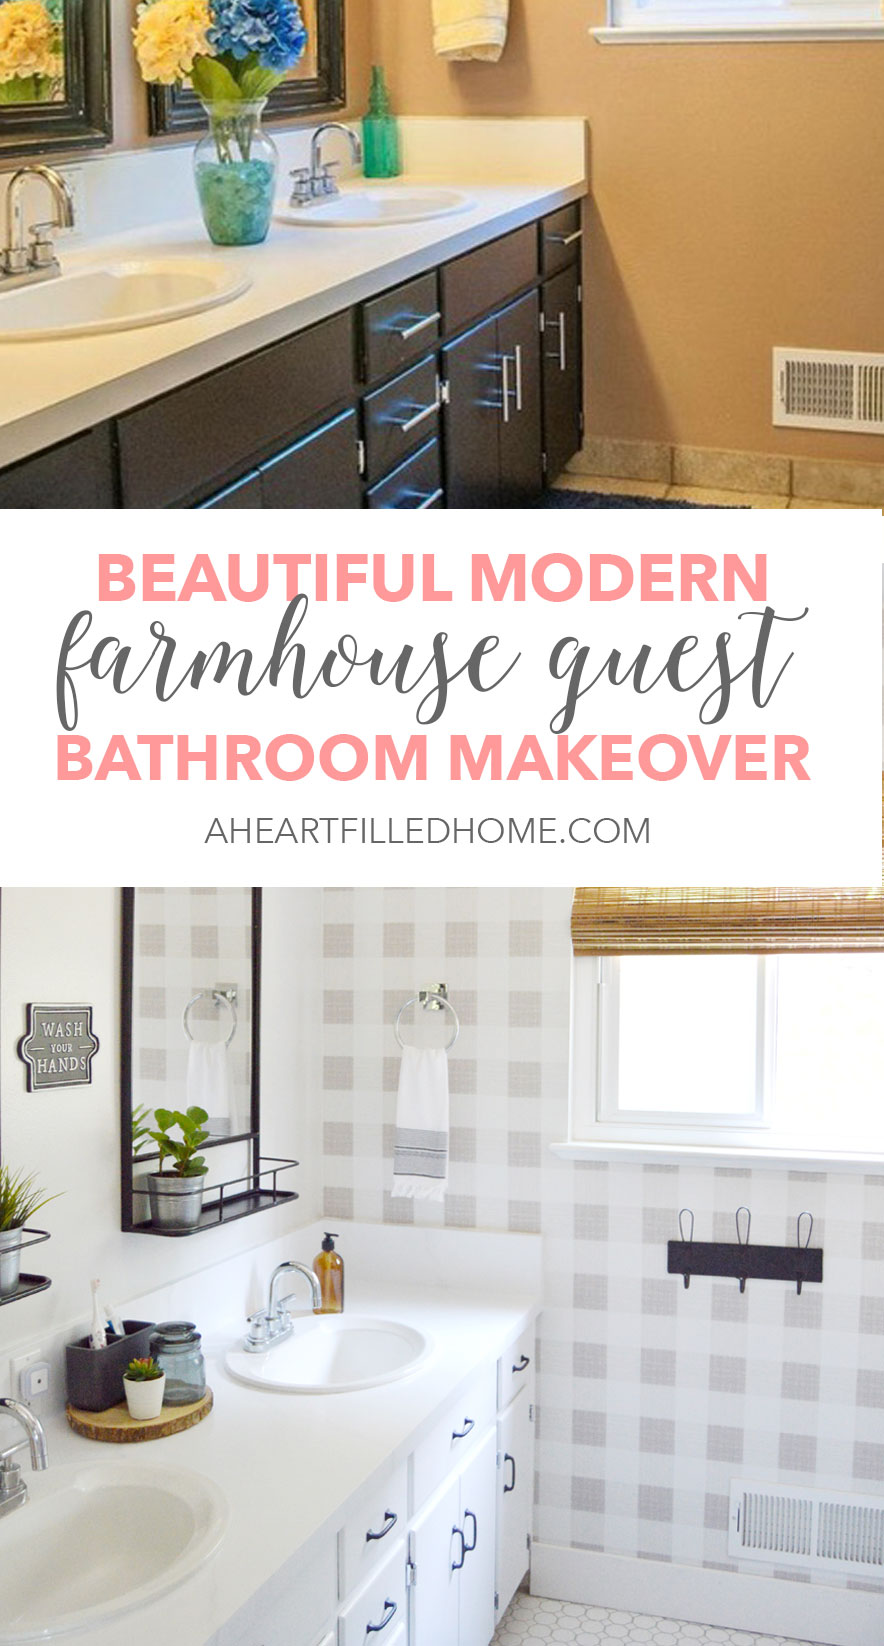 Beautiful Modern Farmhouse Guest Bathroom Makeover Reveal! from A Heart Filled Home